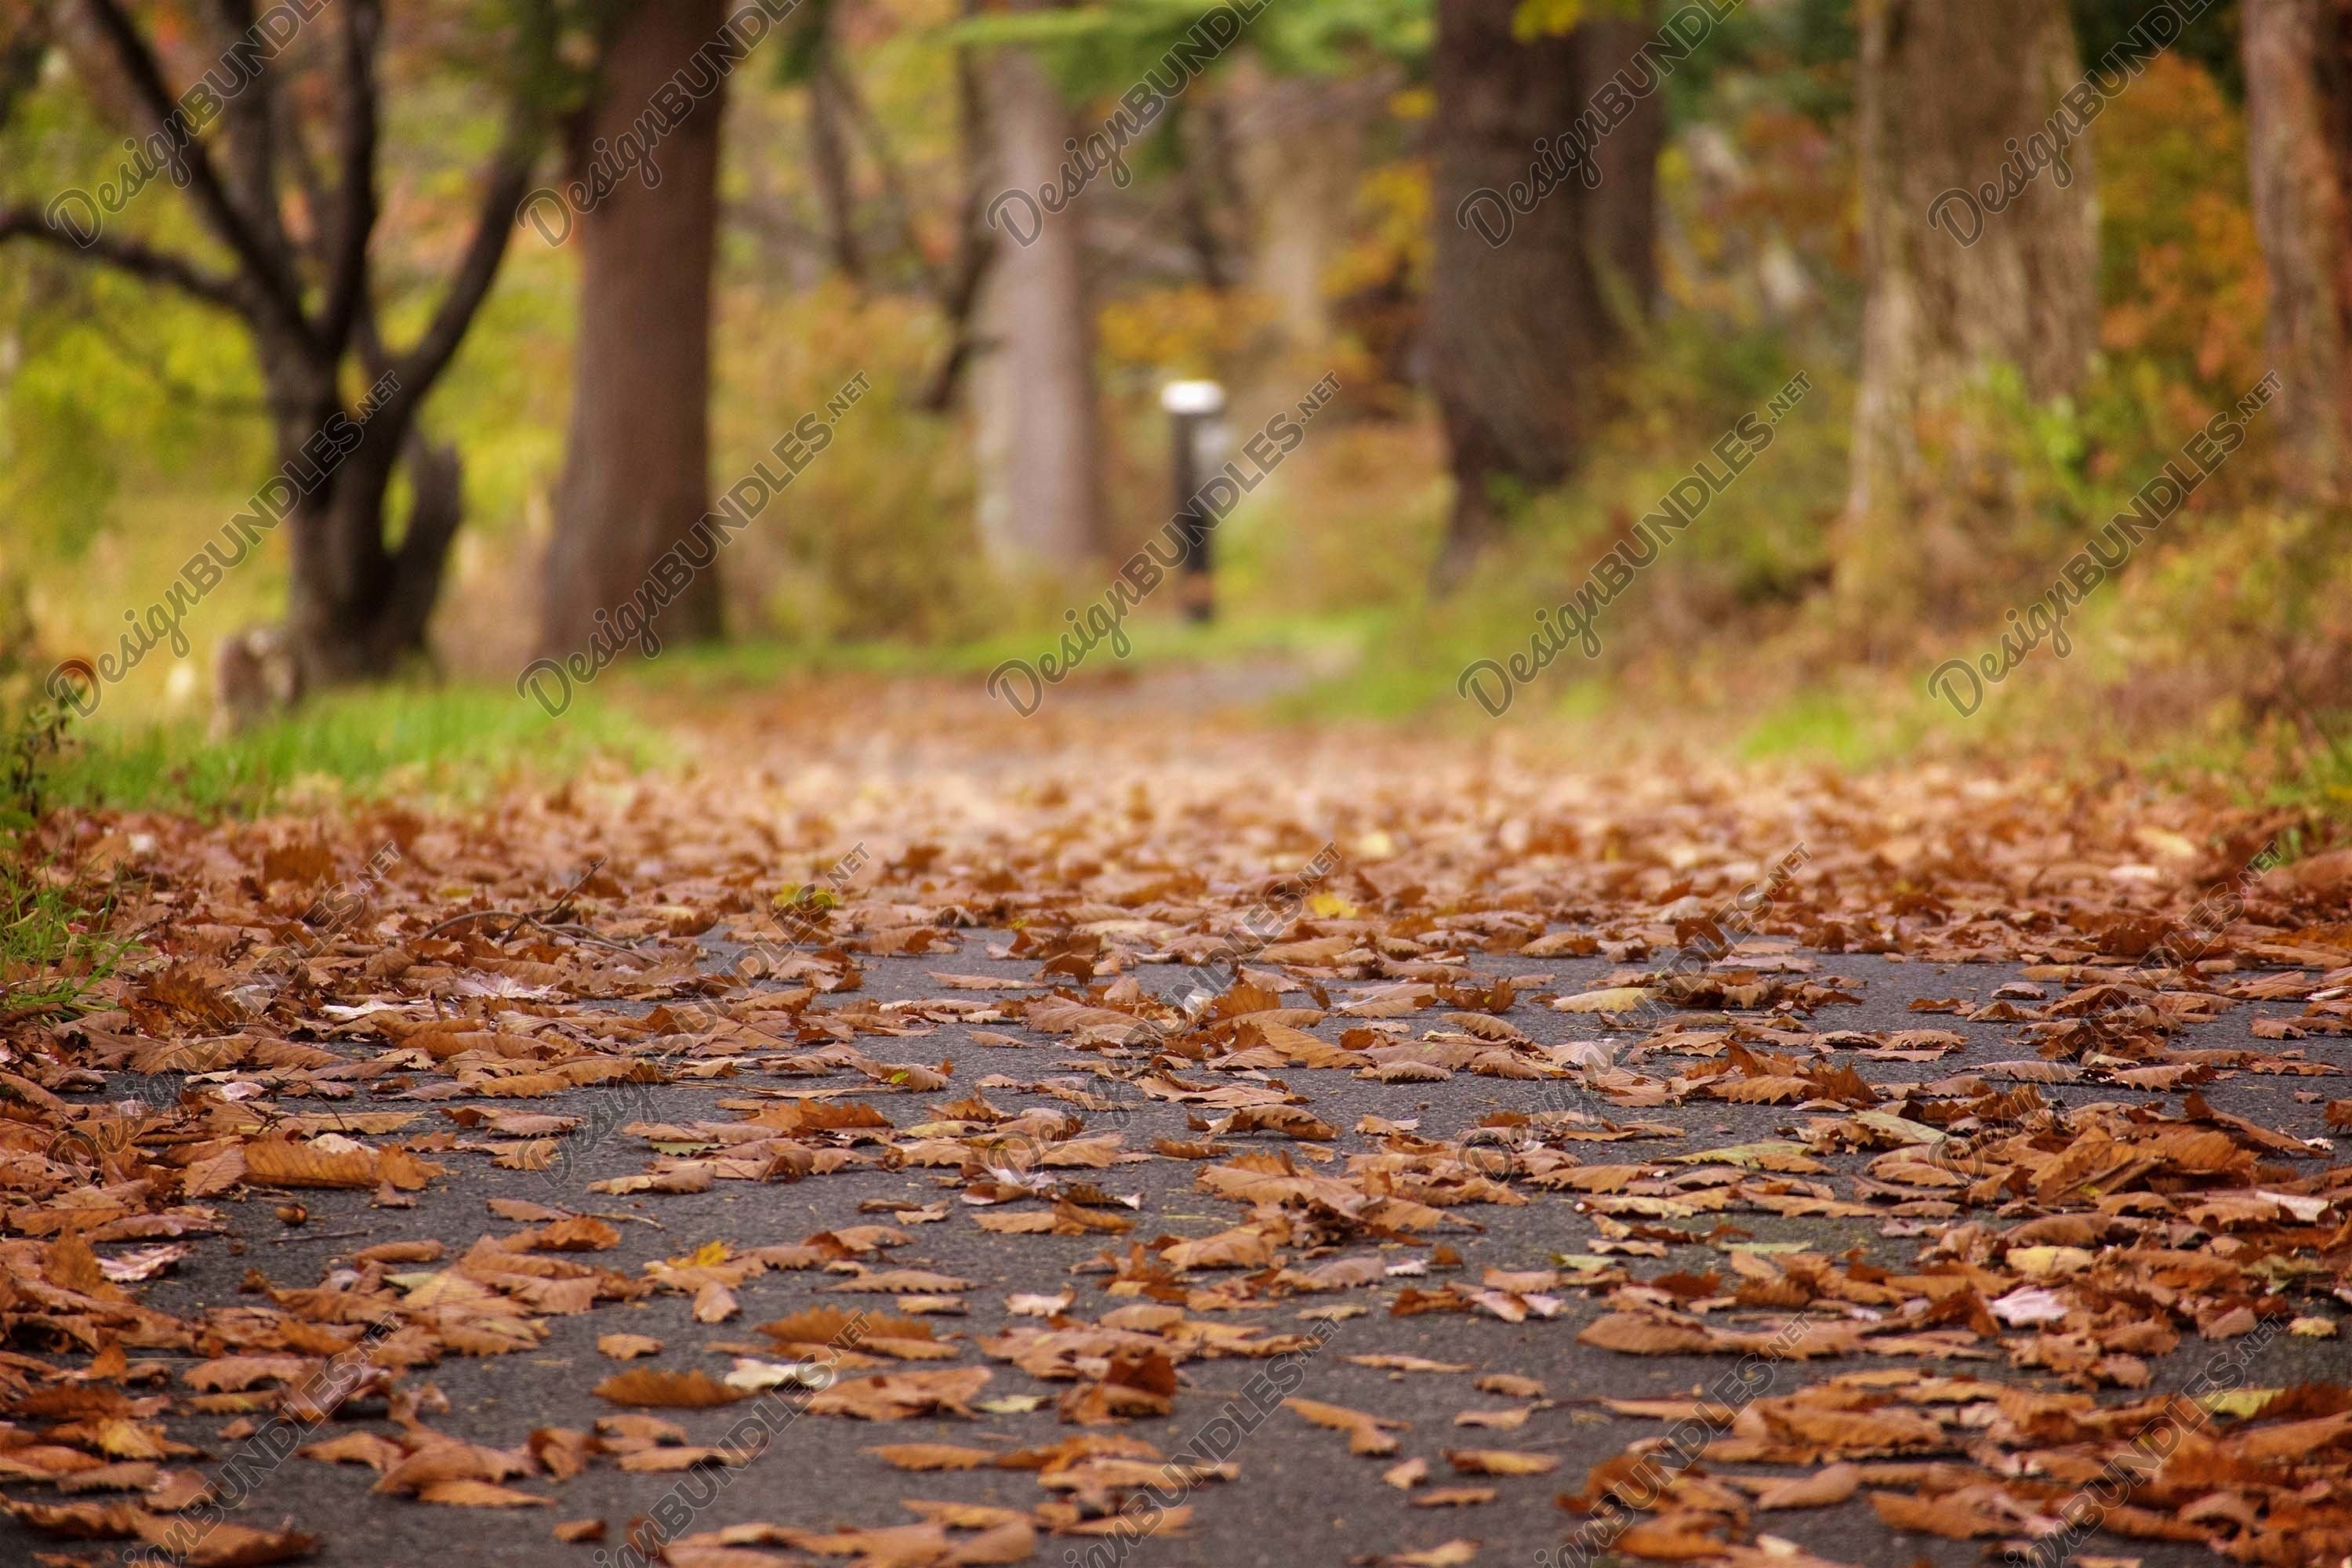 Stock Photo - Trees In Forest During Autumn example image 1